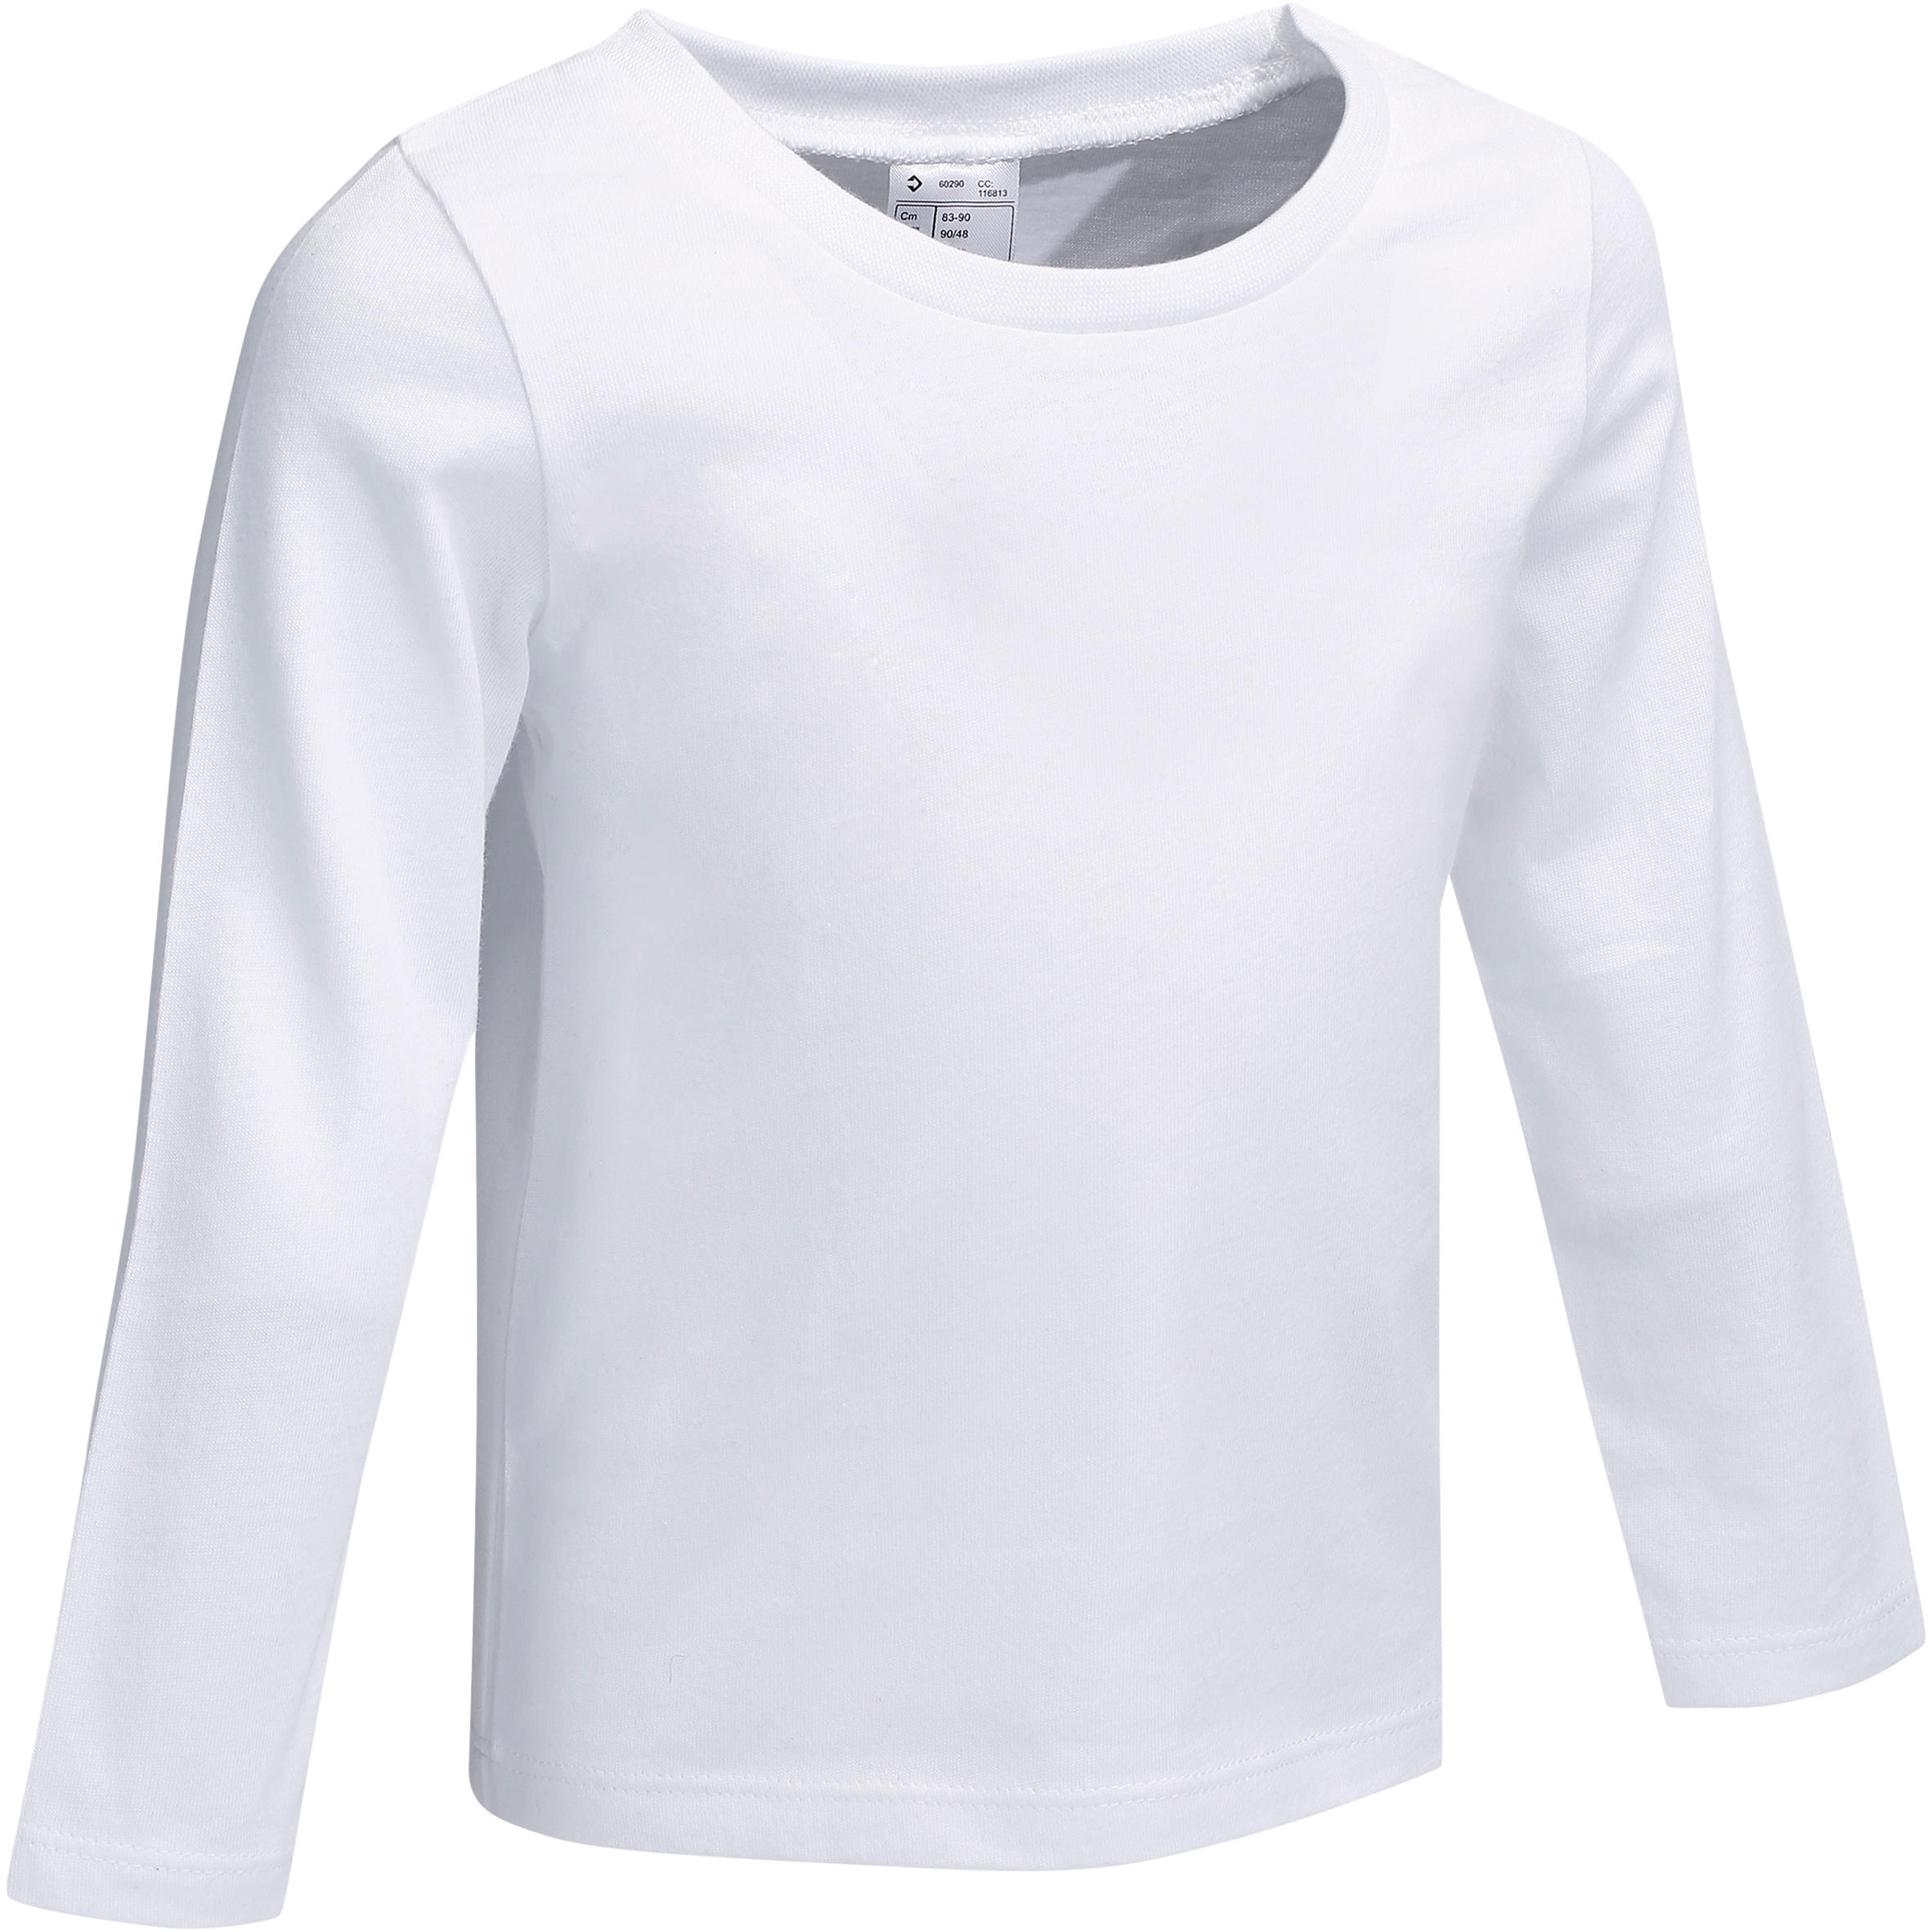 Playera de manga larga Bebé blanco